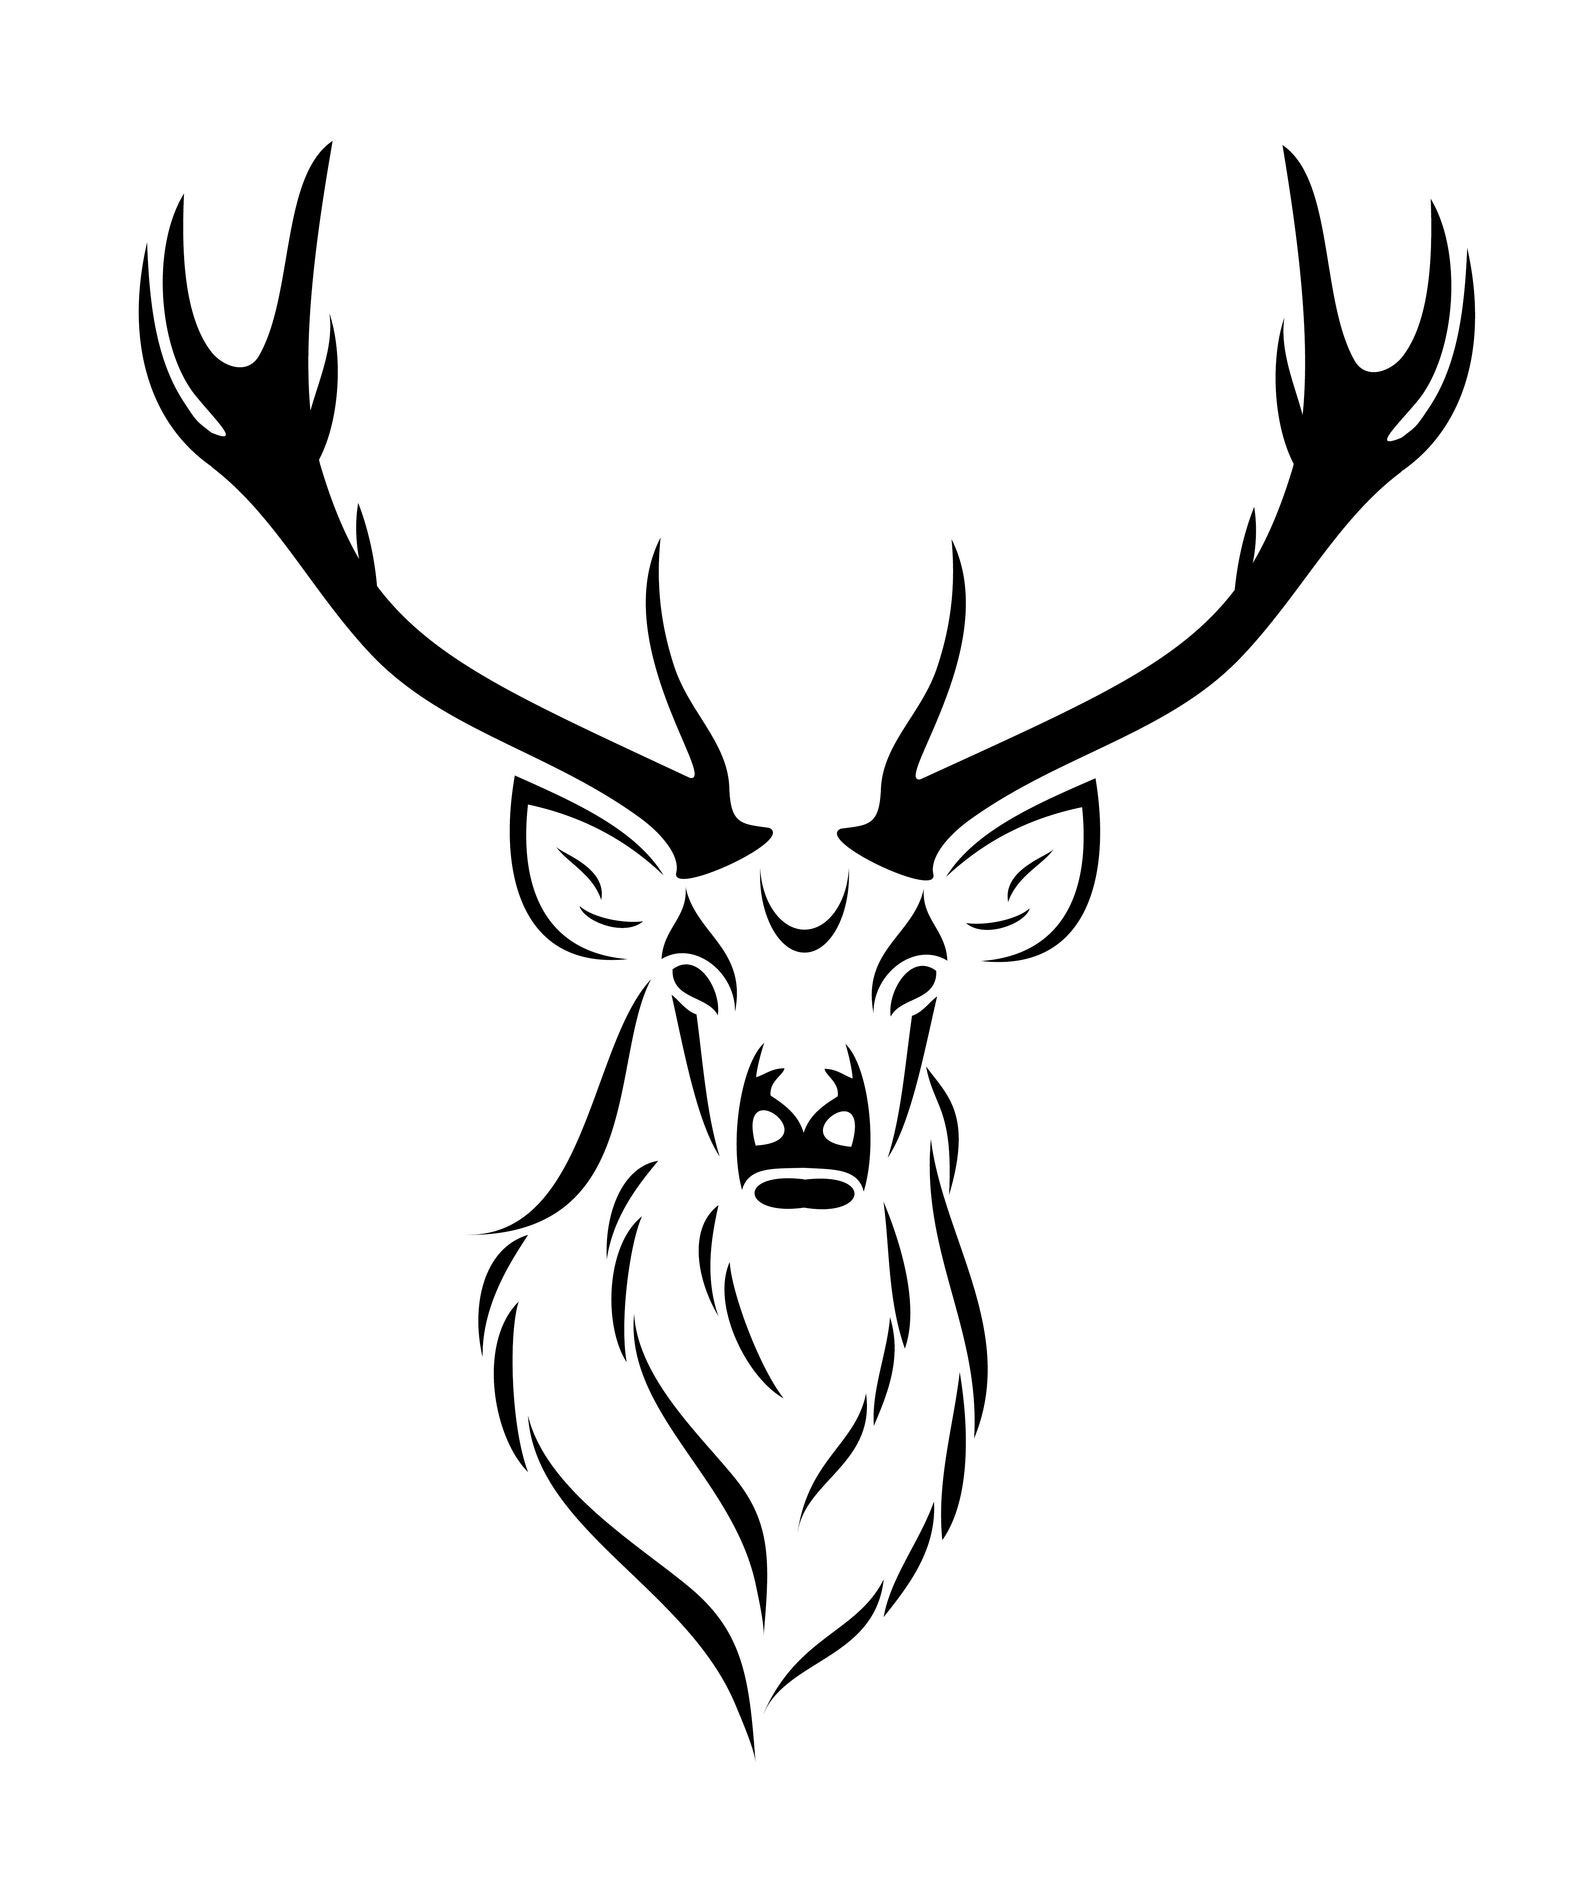 Drawn stag tribal #3 | Sillouette | Deer tattoo, Stag tattoo